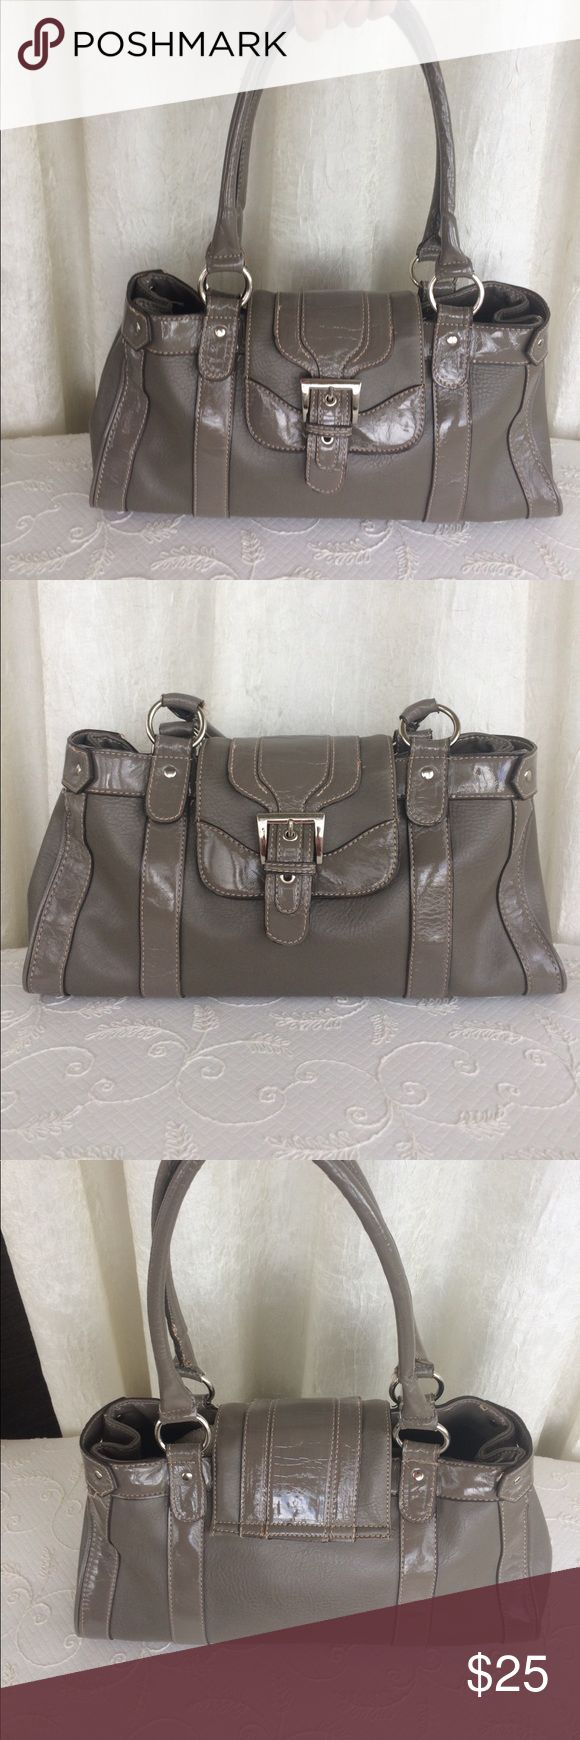 Taupe handbag Large simulated leather neutral color handbag.  Roomy, nice for professionals.  Some frayed stitching, but barely visible.  Overall in very nice condition. Bags Shoulder Bags